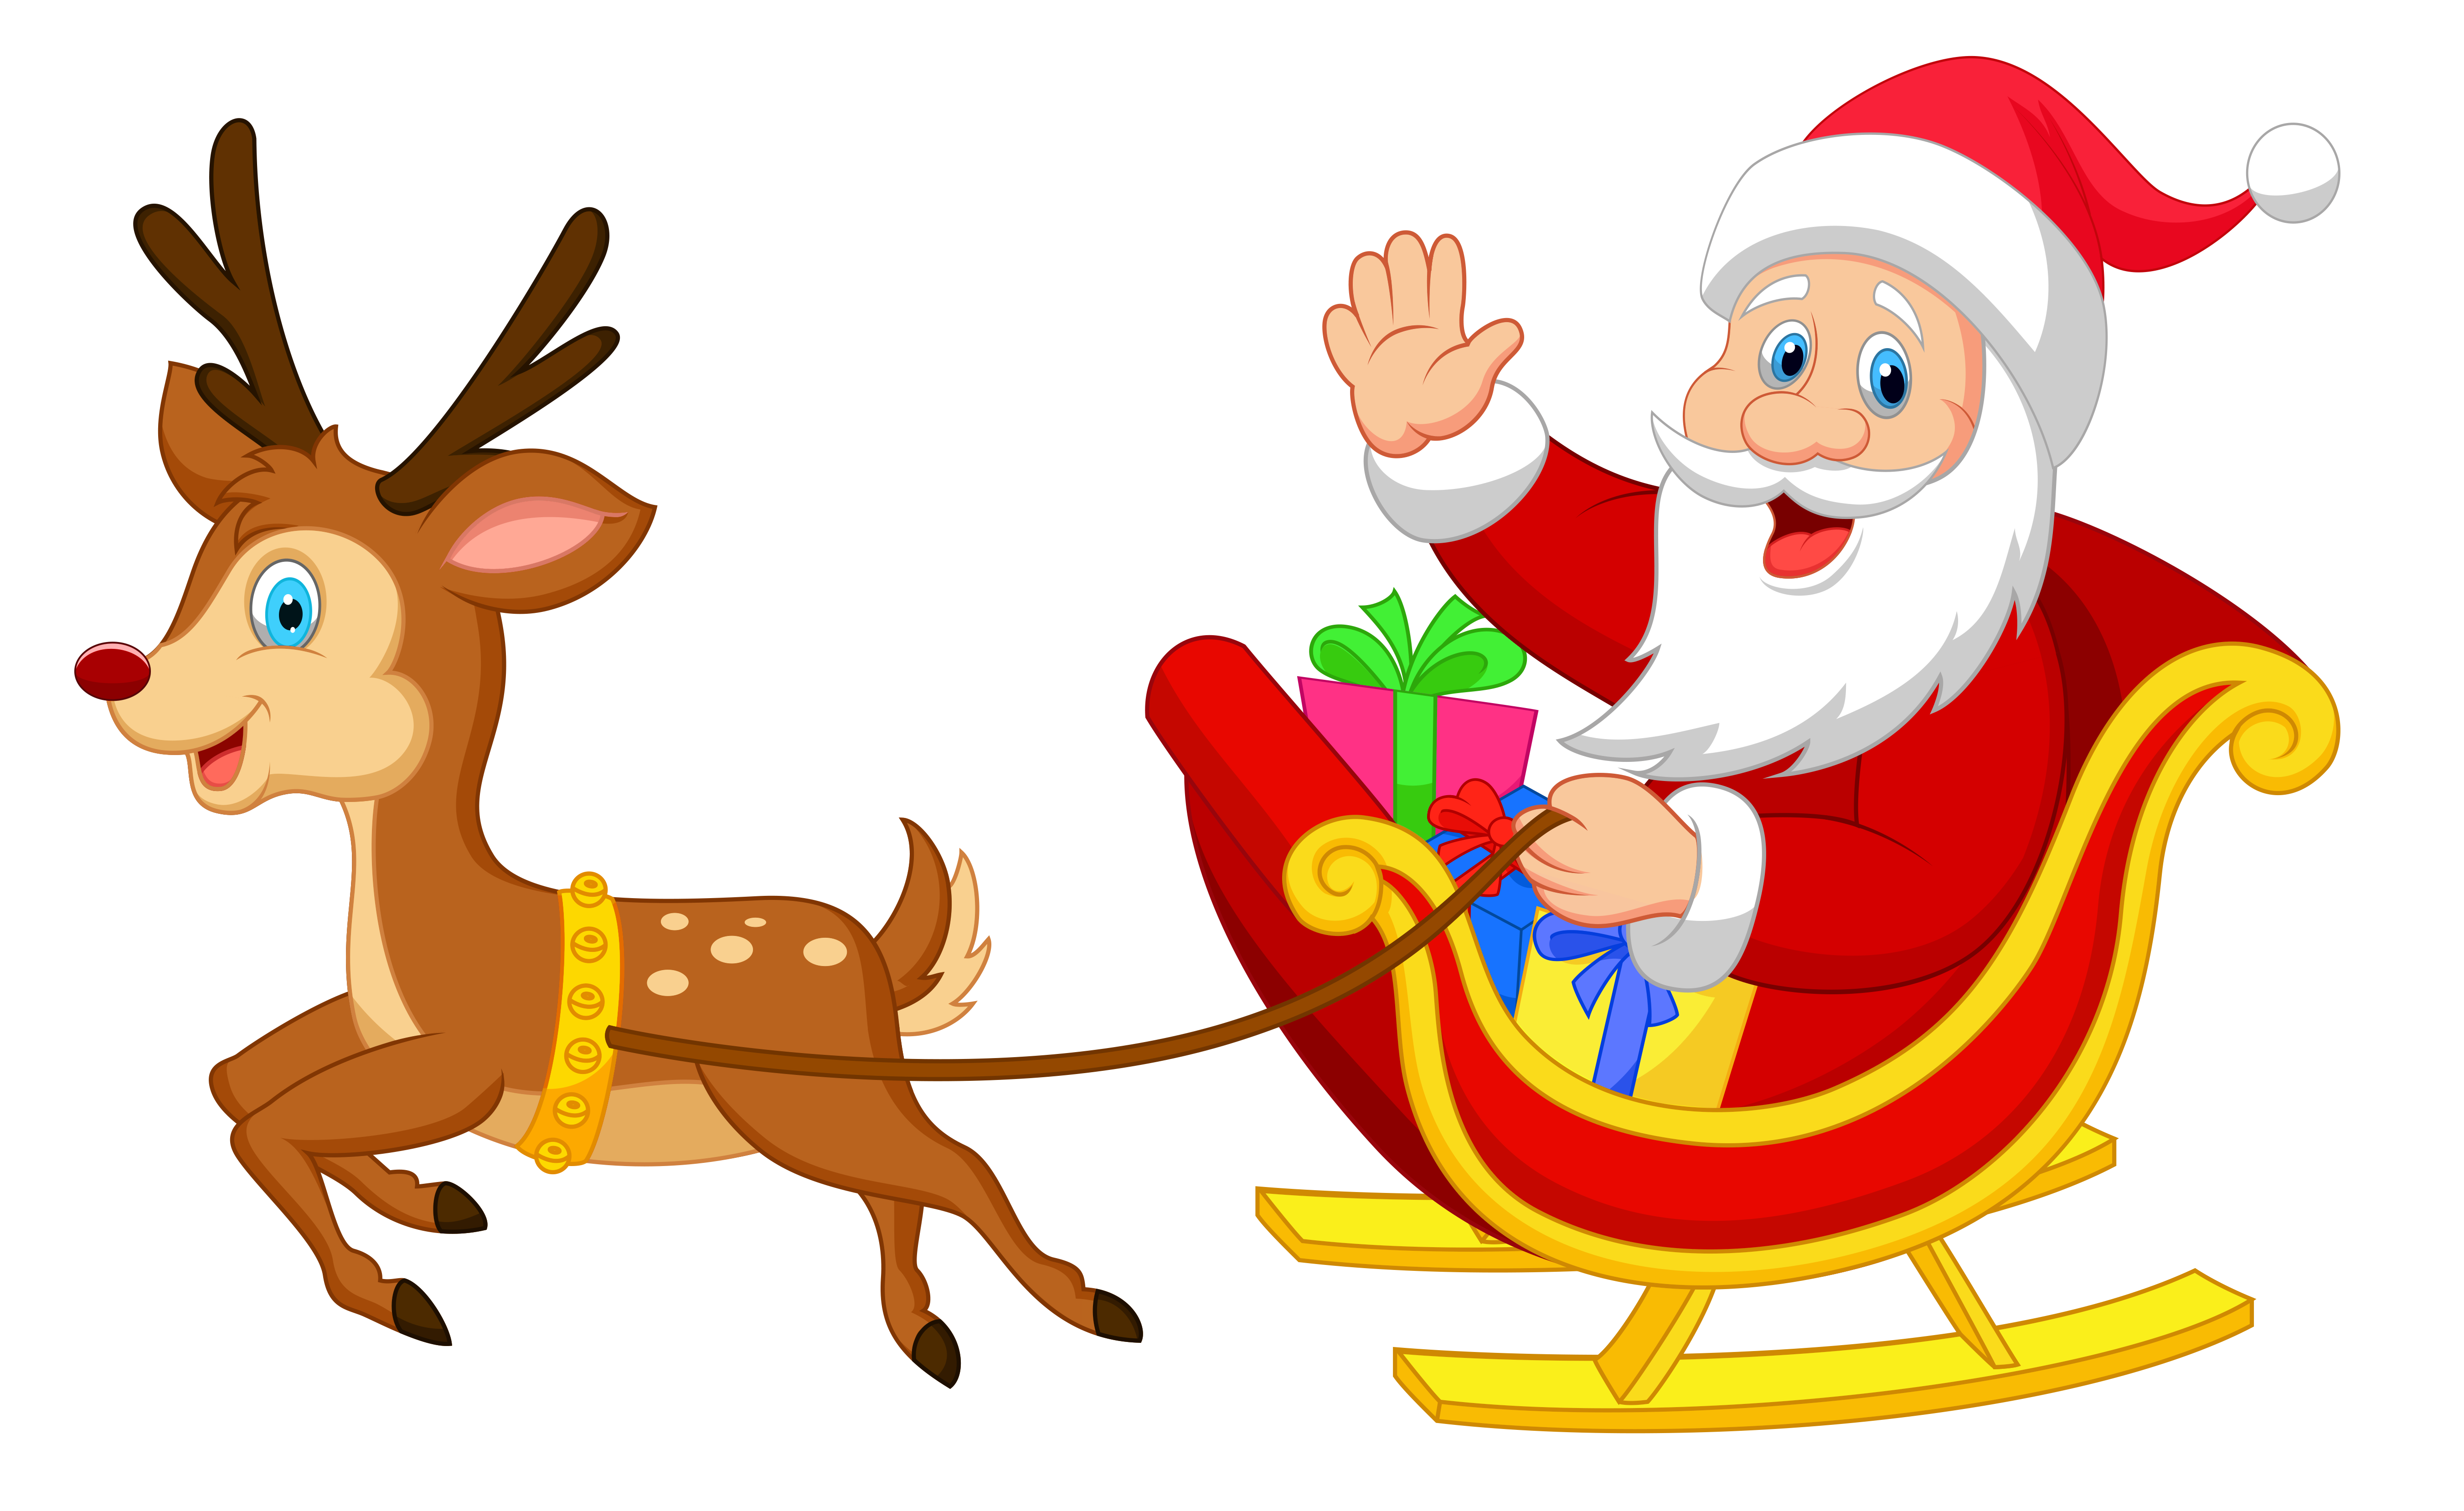 Monday clipart transparent. Santa with rudolph png